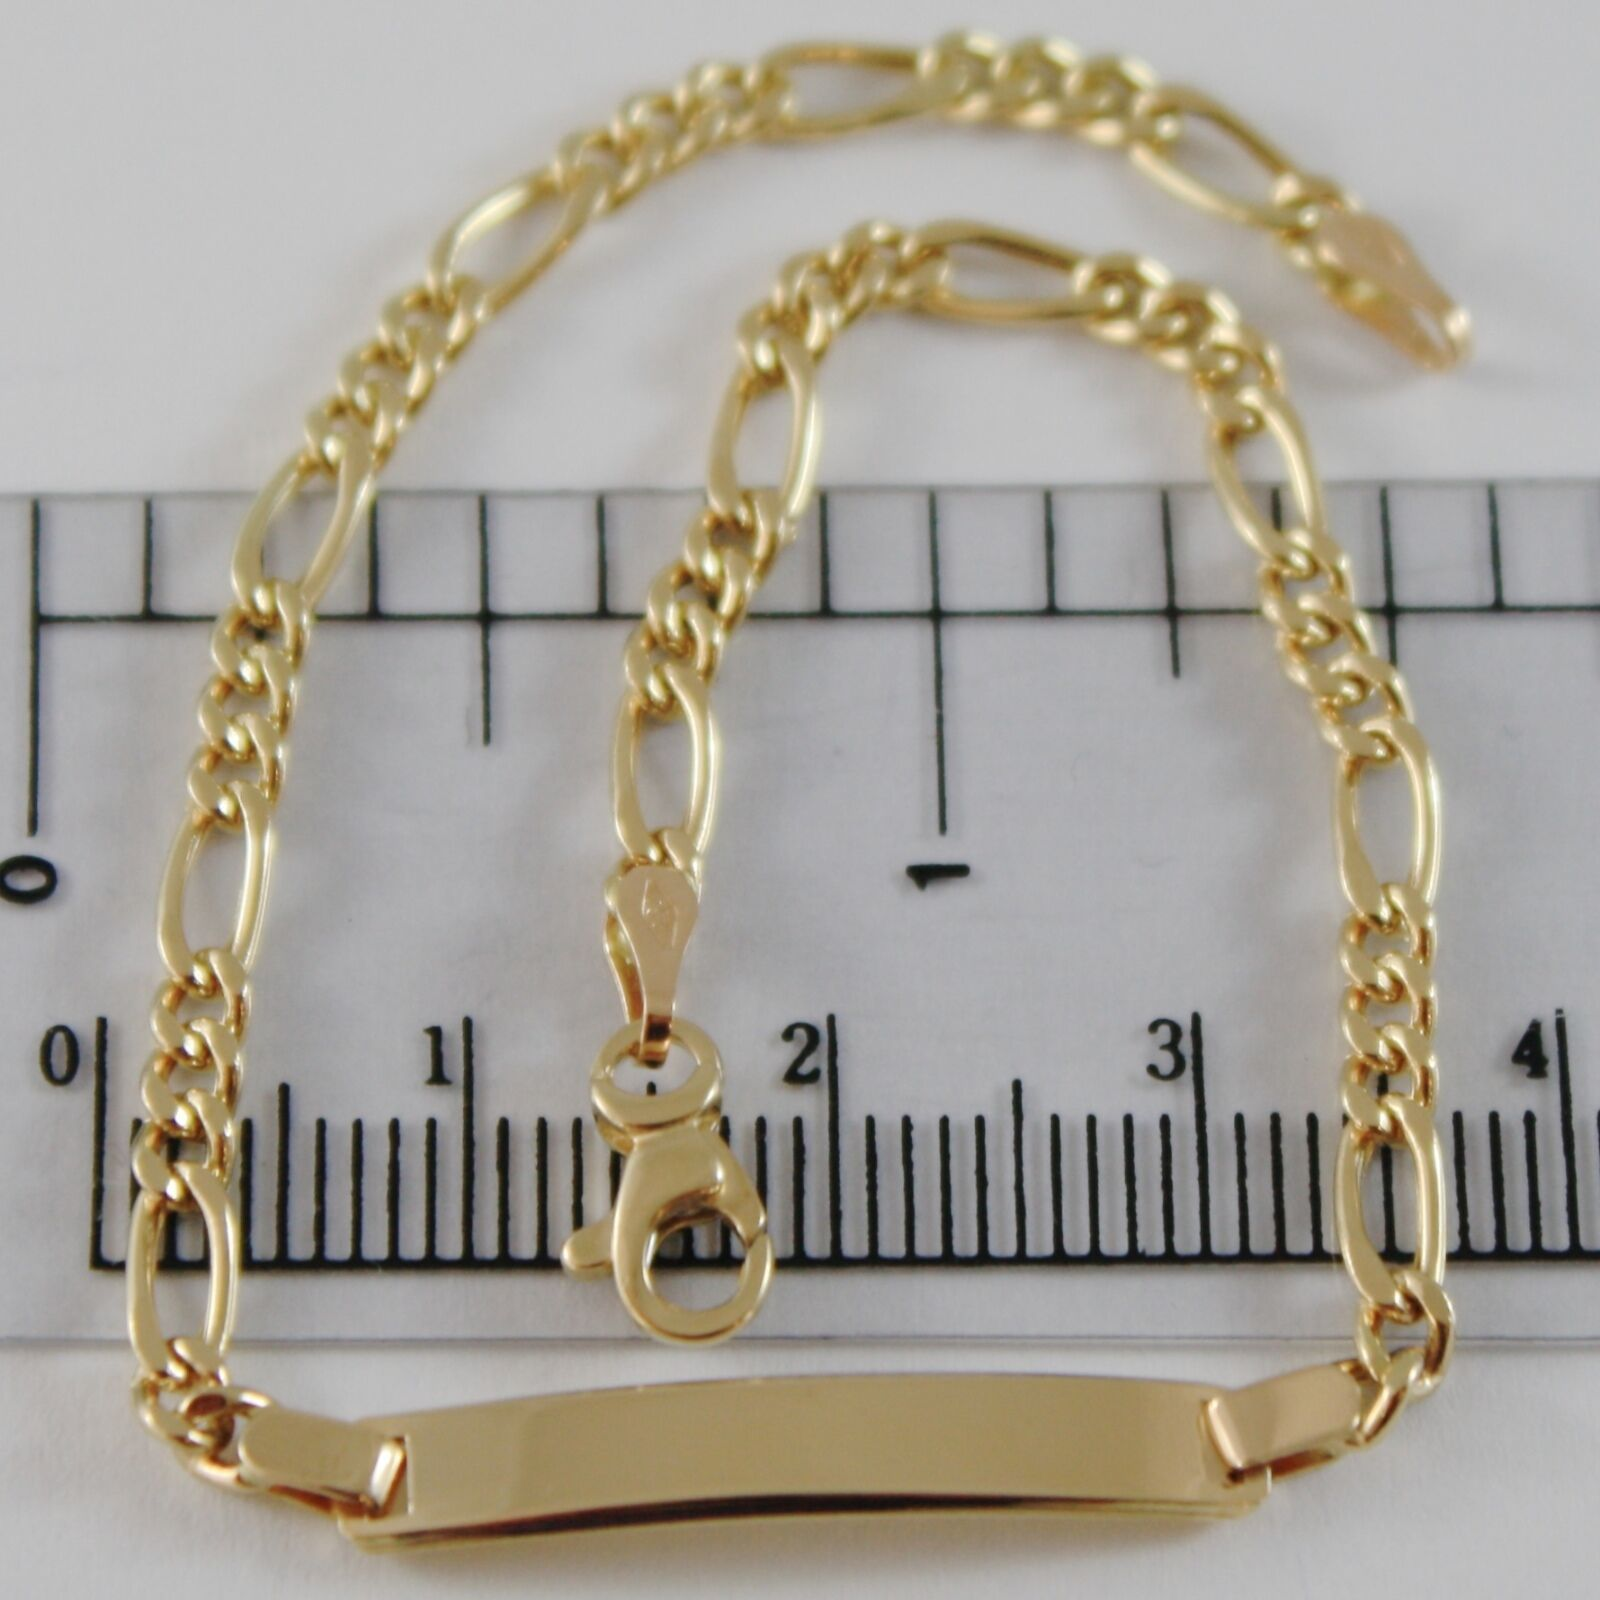 18K YELLOW GOLD BRACELET CLASSIC ALTERNATE GOURMETTE WITH PLATE, MADE IN ITALY